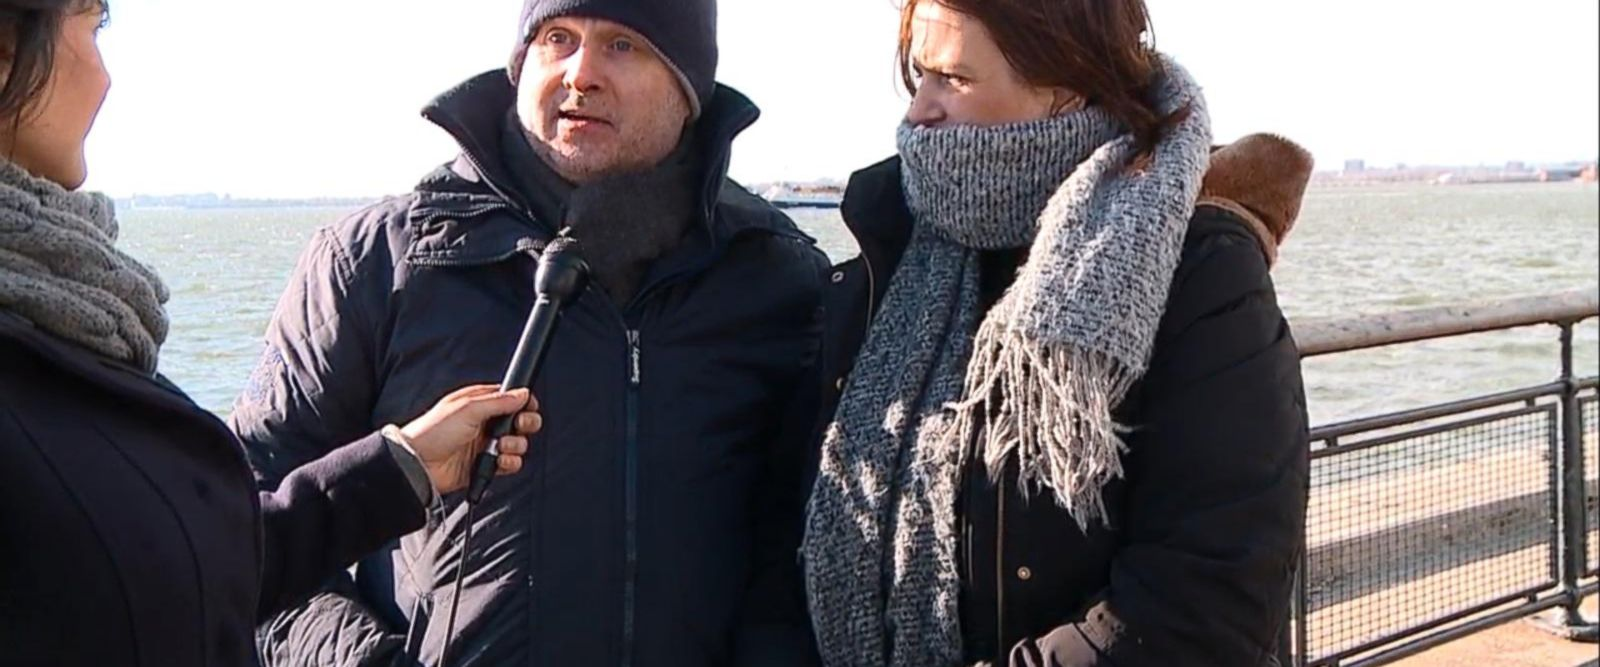 VIDEO: Statue of Liberty closed due to federal government shutdown.